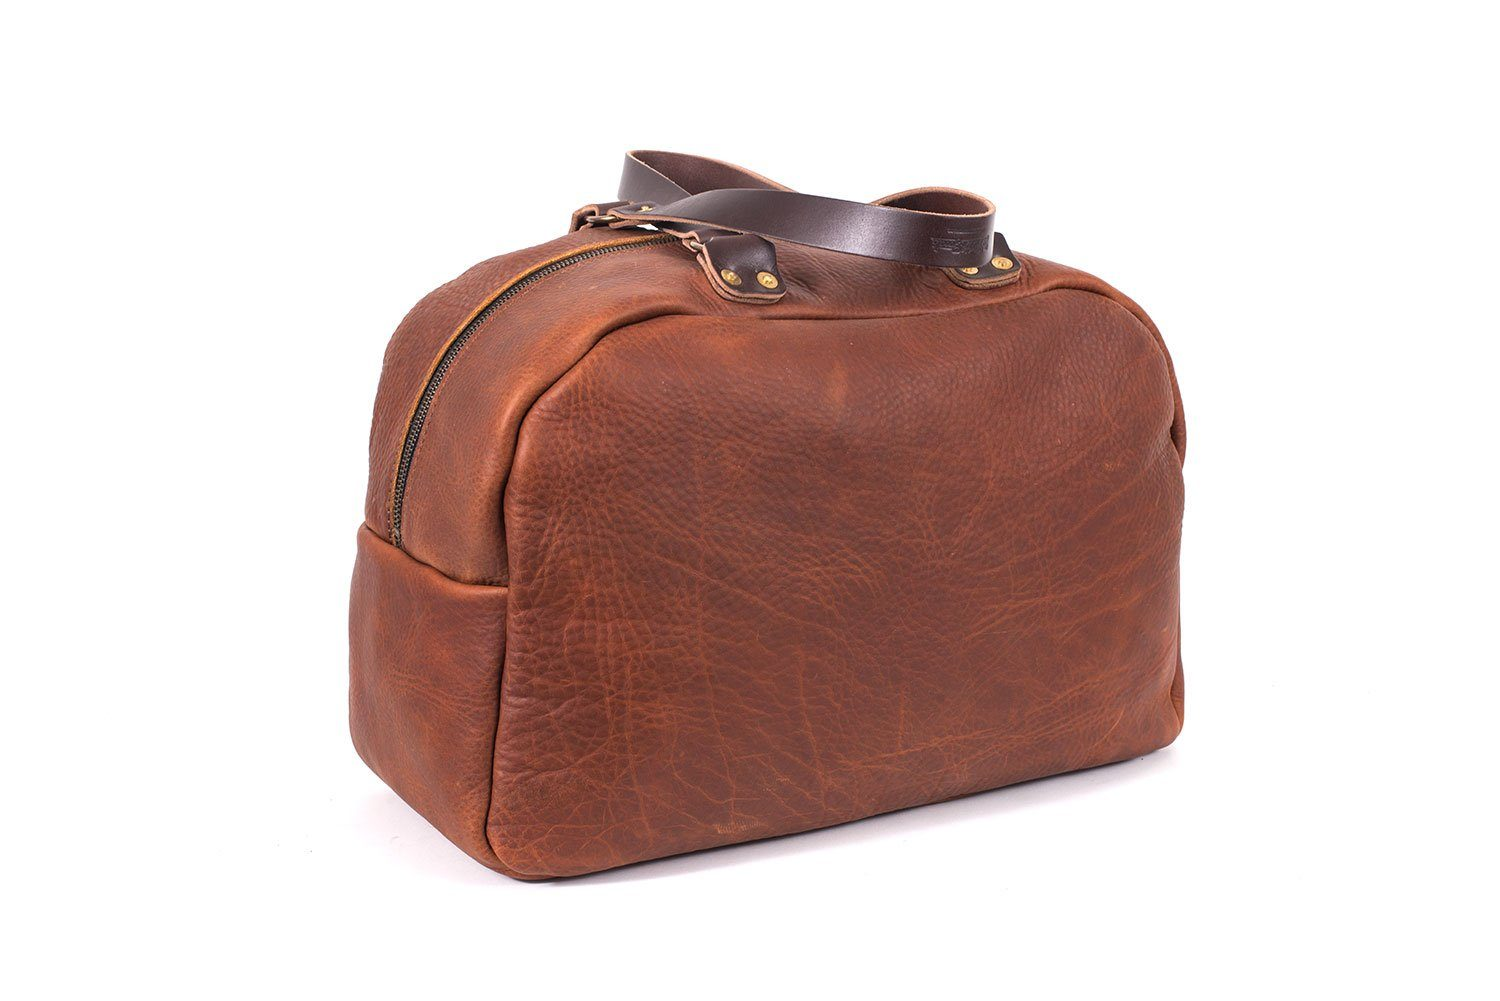 HOFFMAN LEATHER WEEKENDER DUFFEL BAG